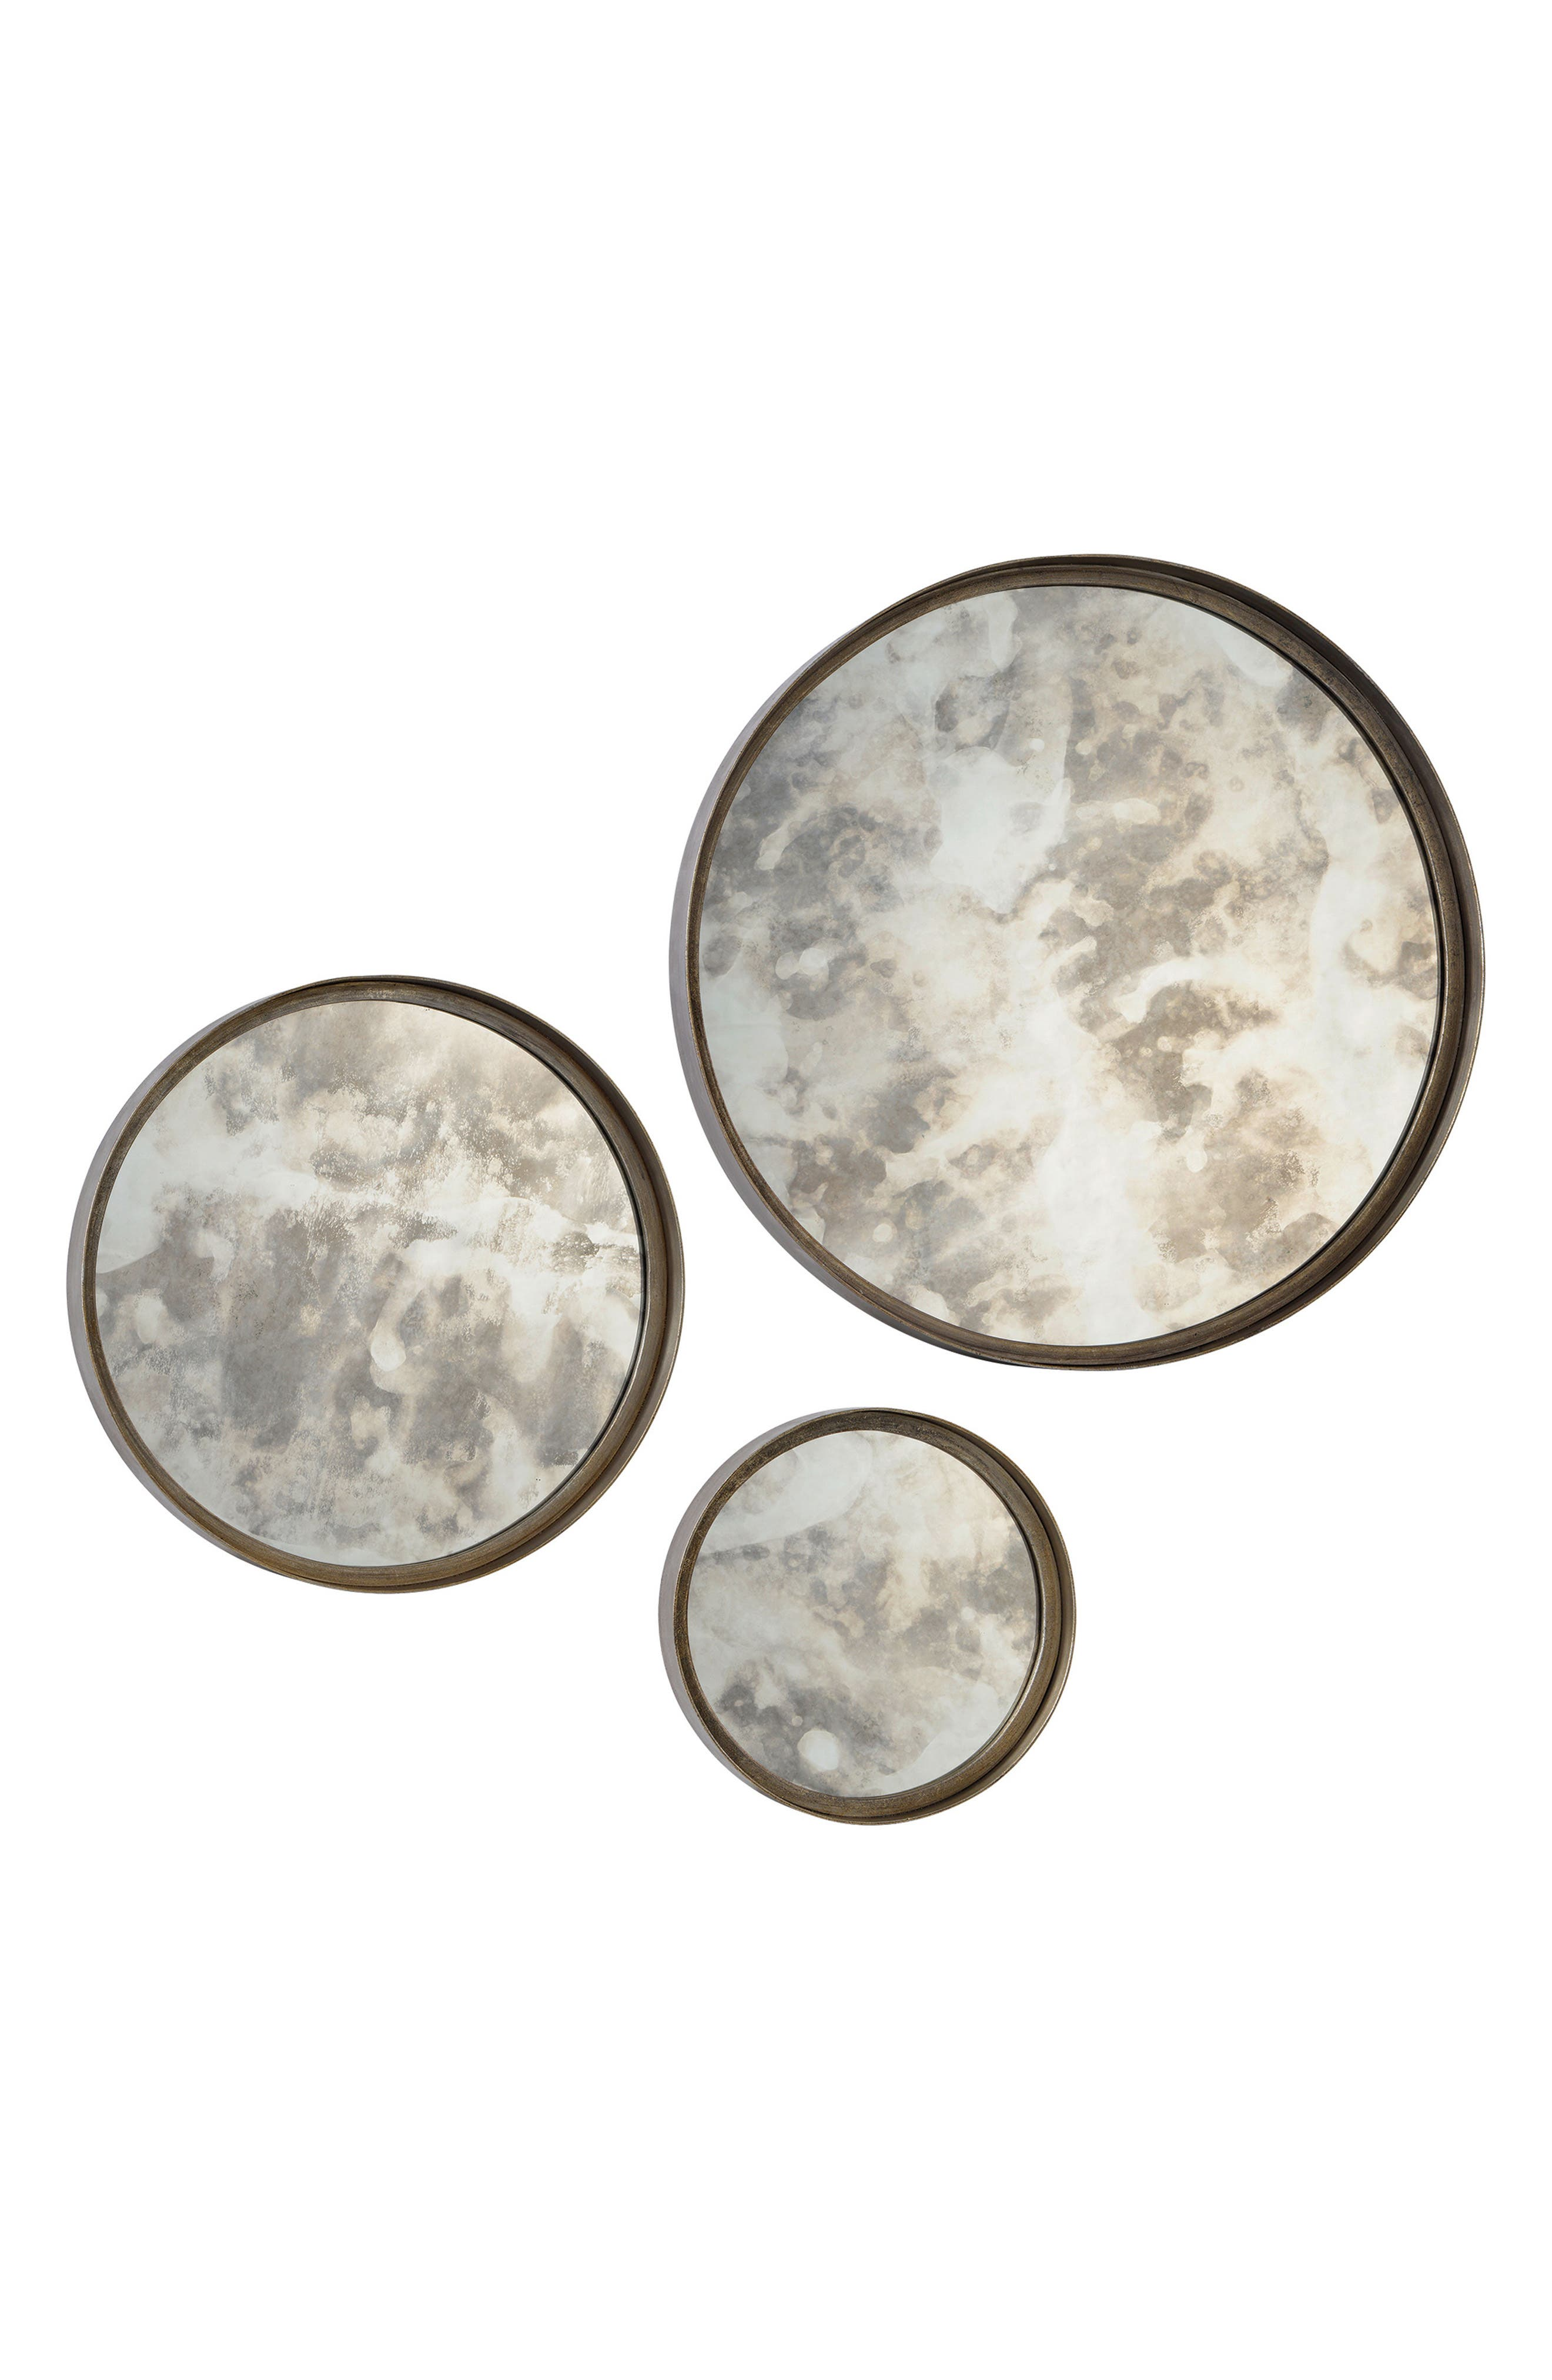 Shire Set of 3 Mirrors,                             Main thumbnail 1, color,                             ANTIQUE SILVER